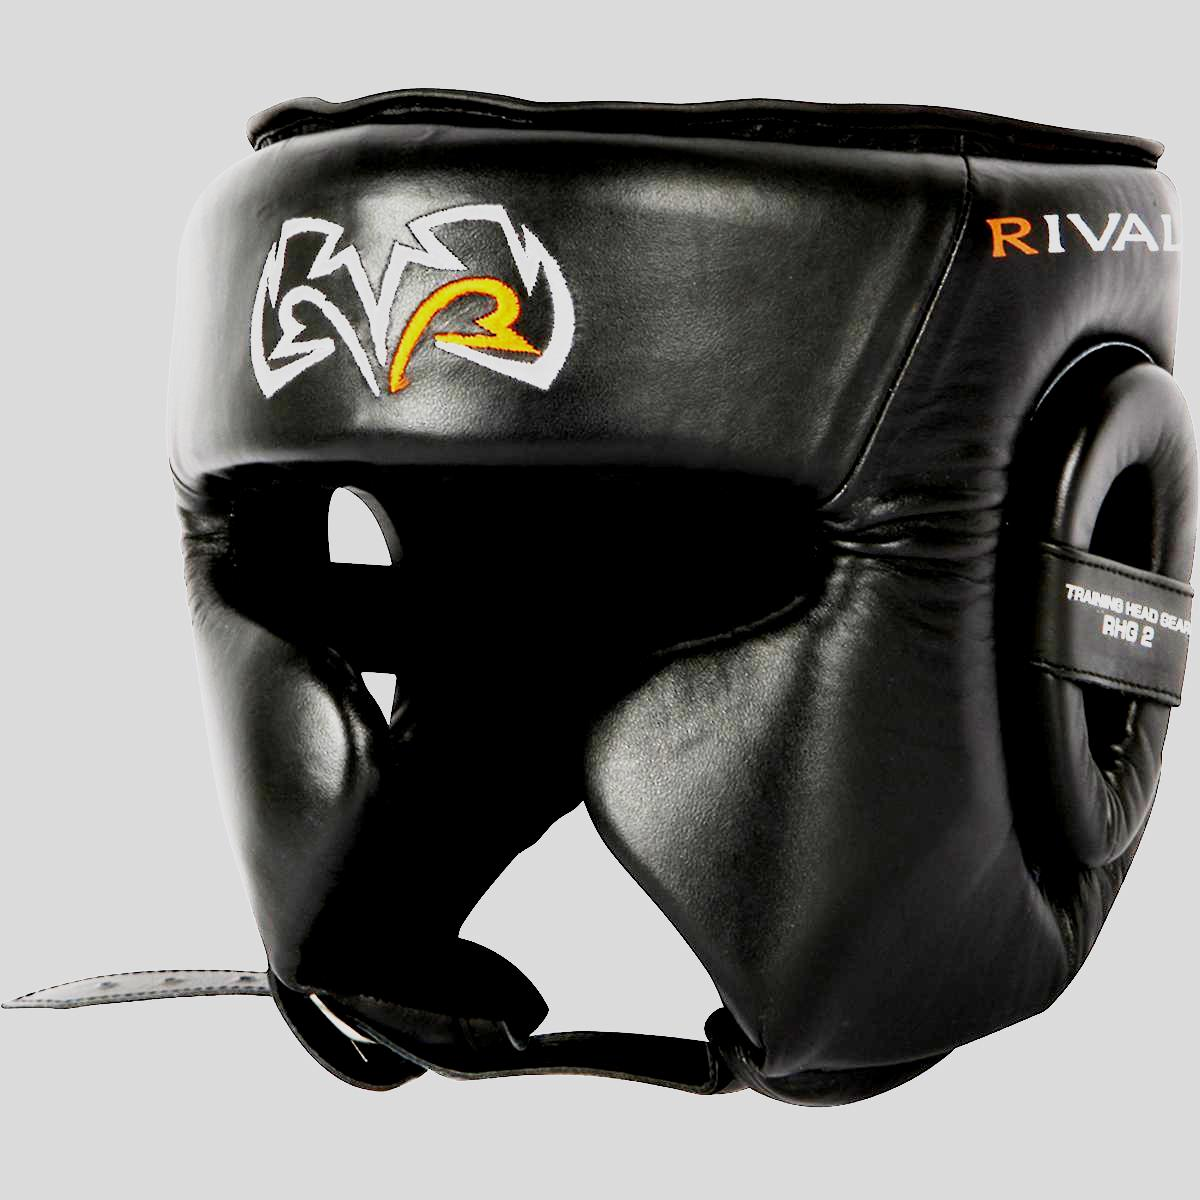 Rival Traditional Training Headgear